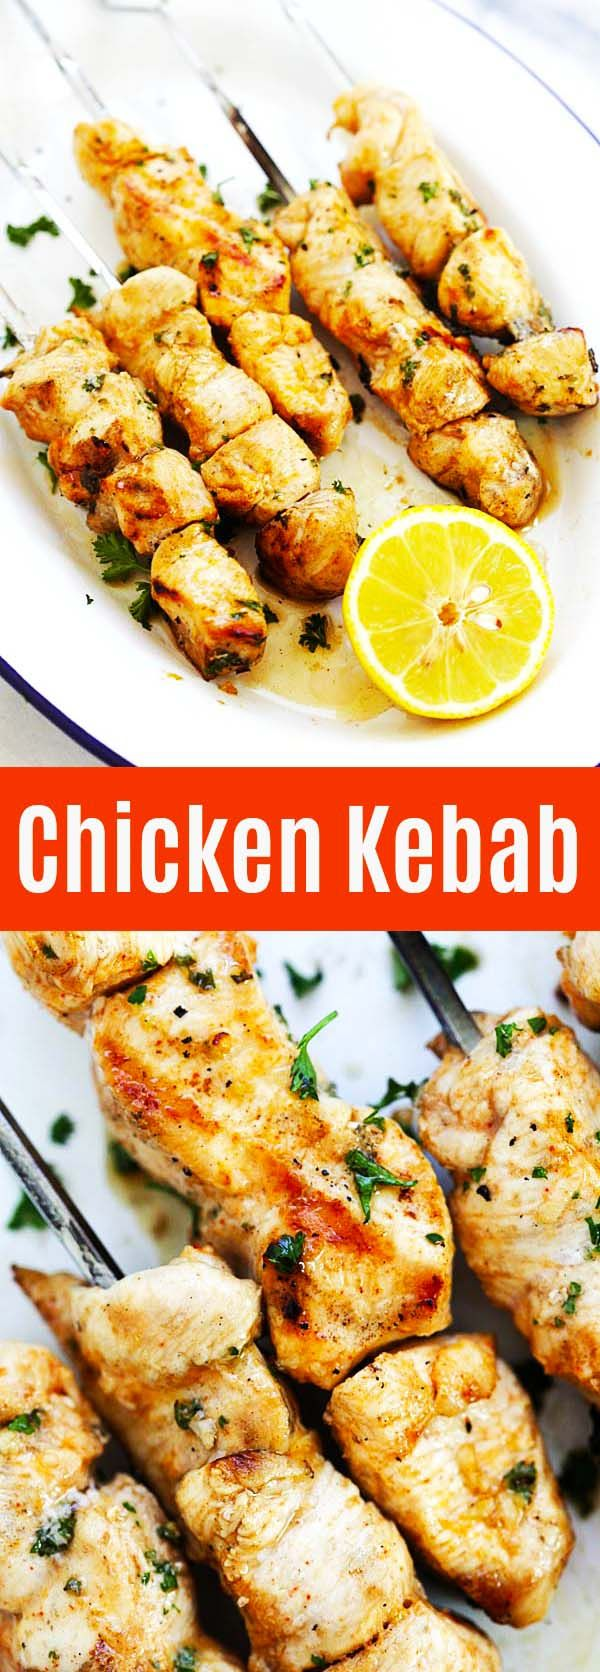 The best and juiciest chicken kebab recipe ever. Threaded on skewers and marinated with olive oil, lemon juice, paprika, garlic and cumin. So good | rasamalaysia.com